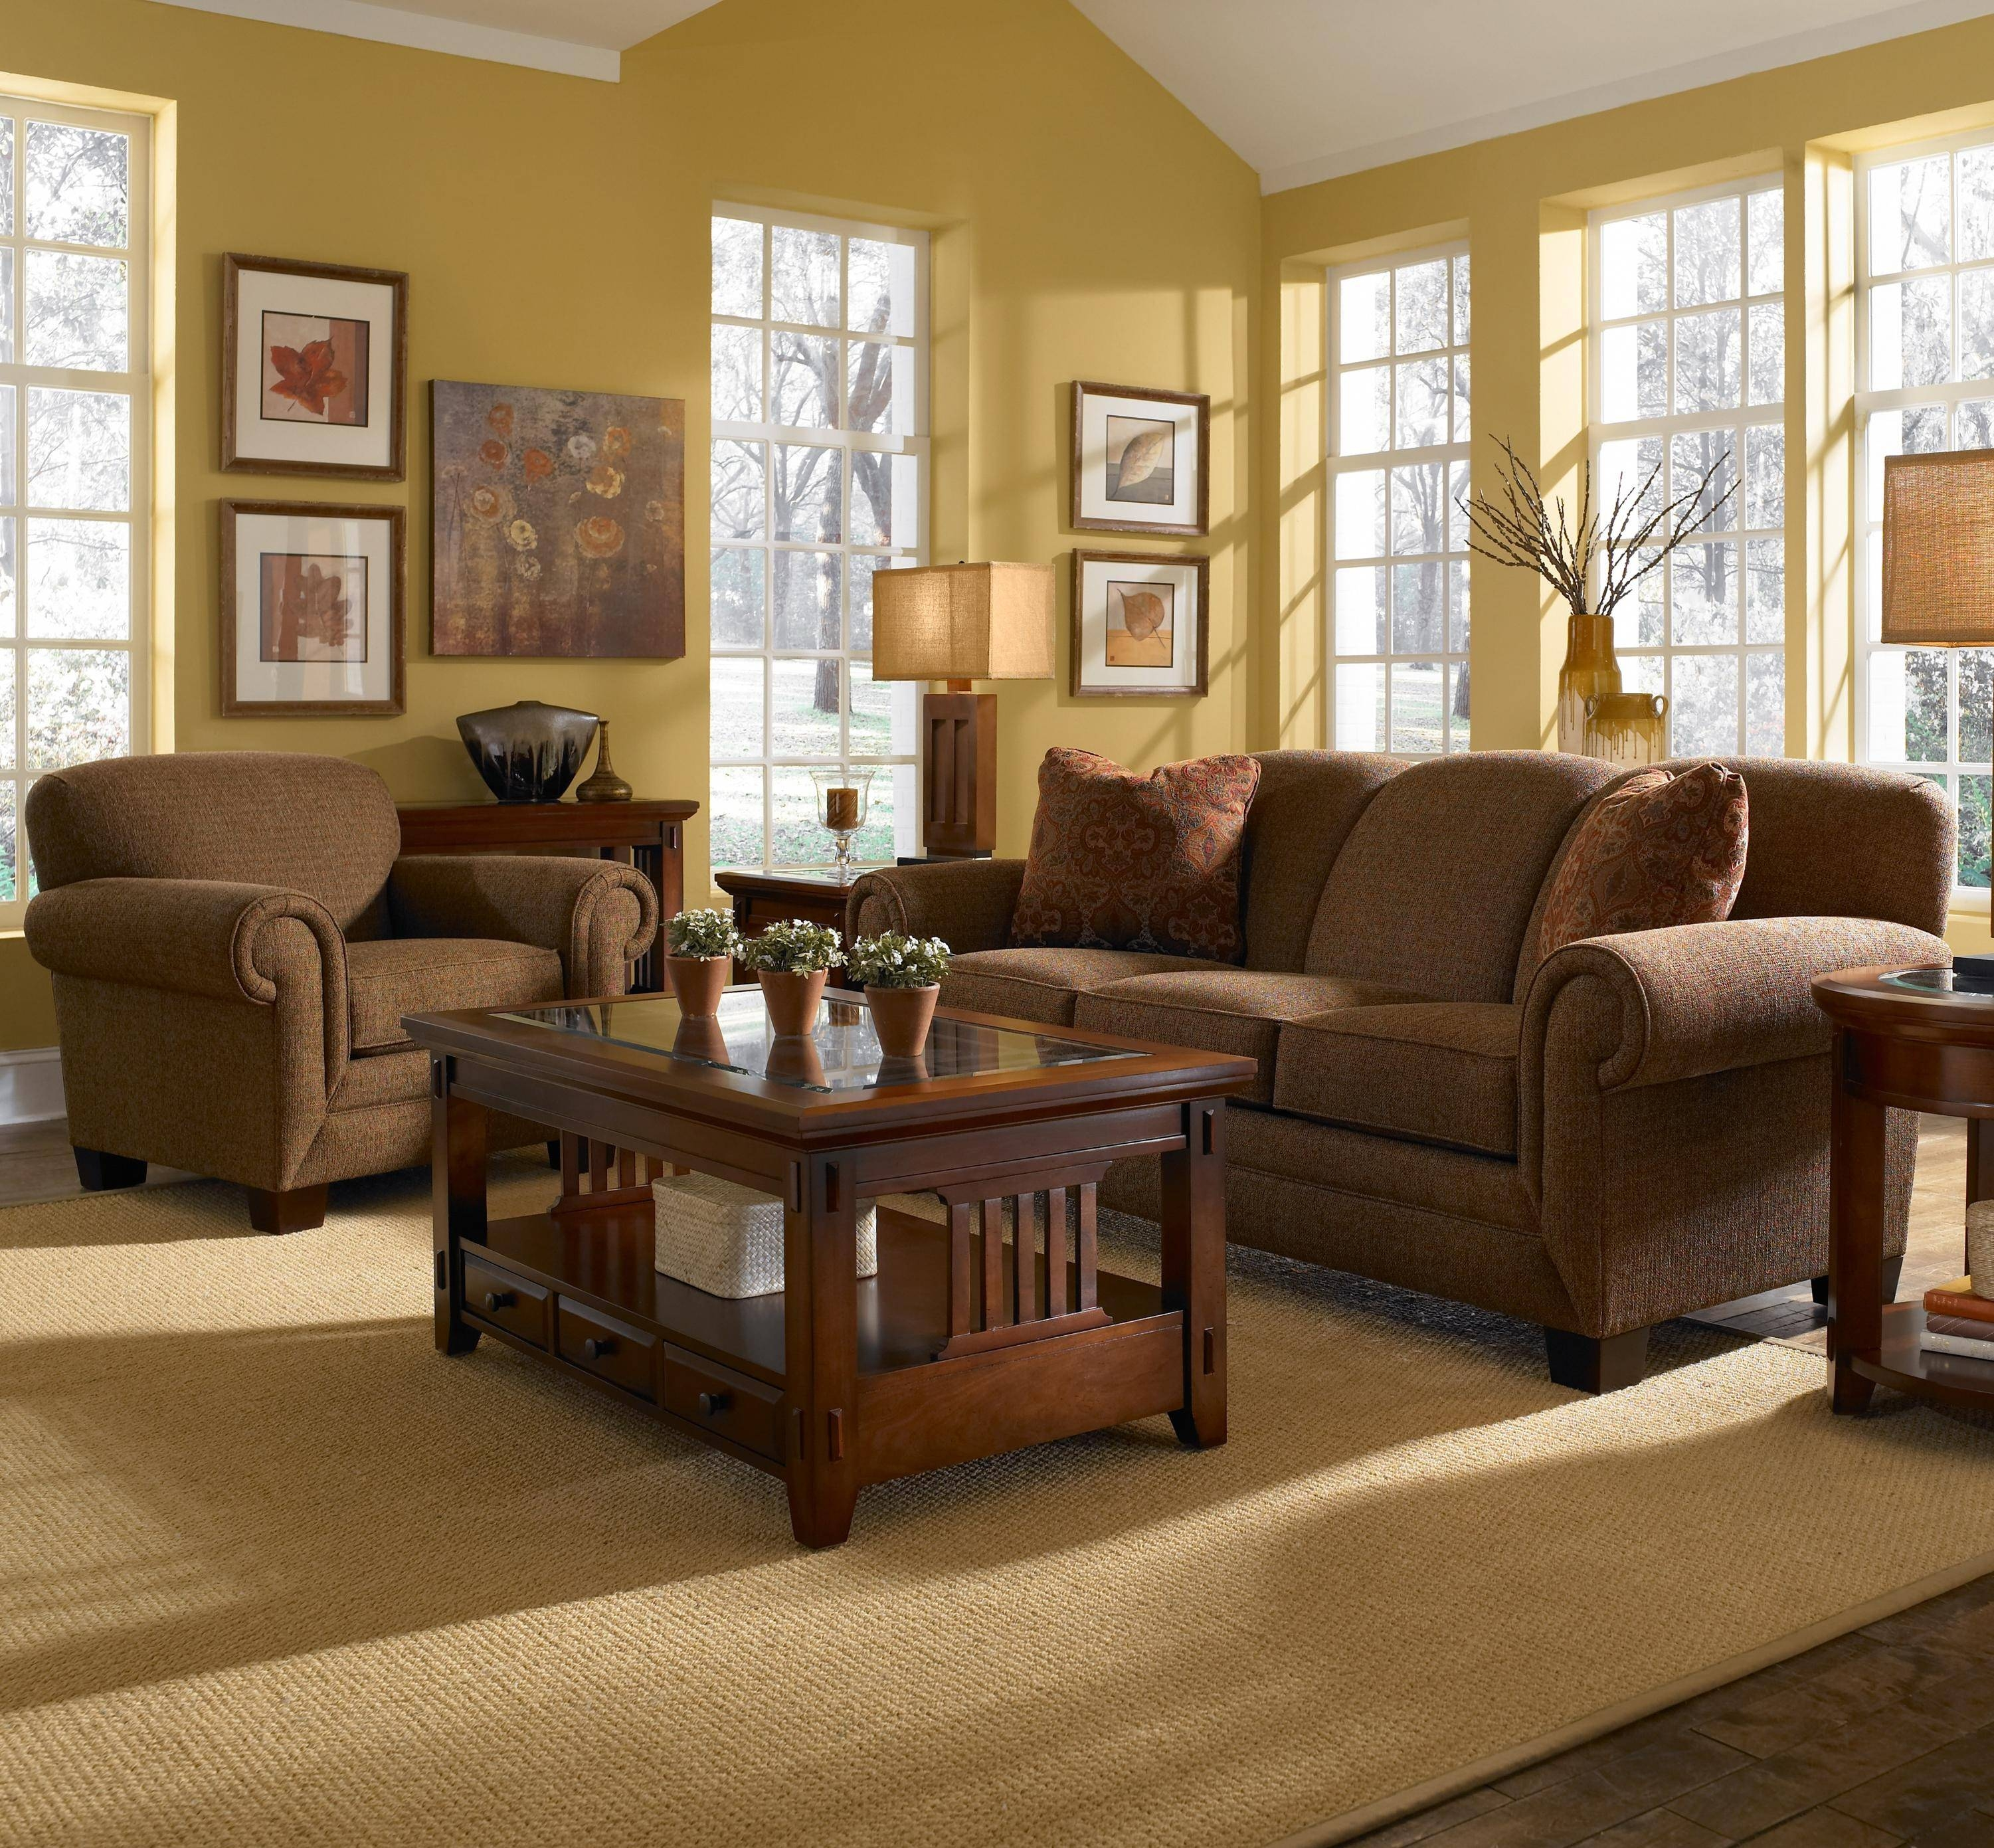 Furniture: Broyhill Sofas | Broyhill Furniture | Broyhill Prices throughout Broyhill Mckinney Sofas (Image 13 of 15)